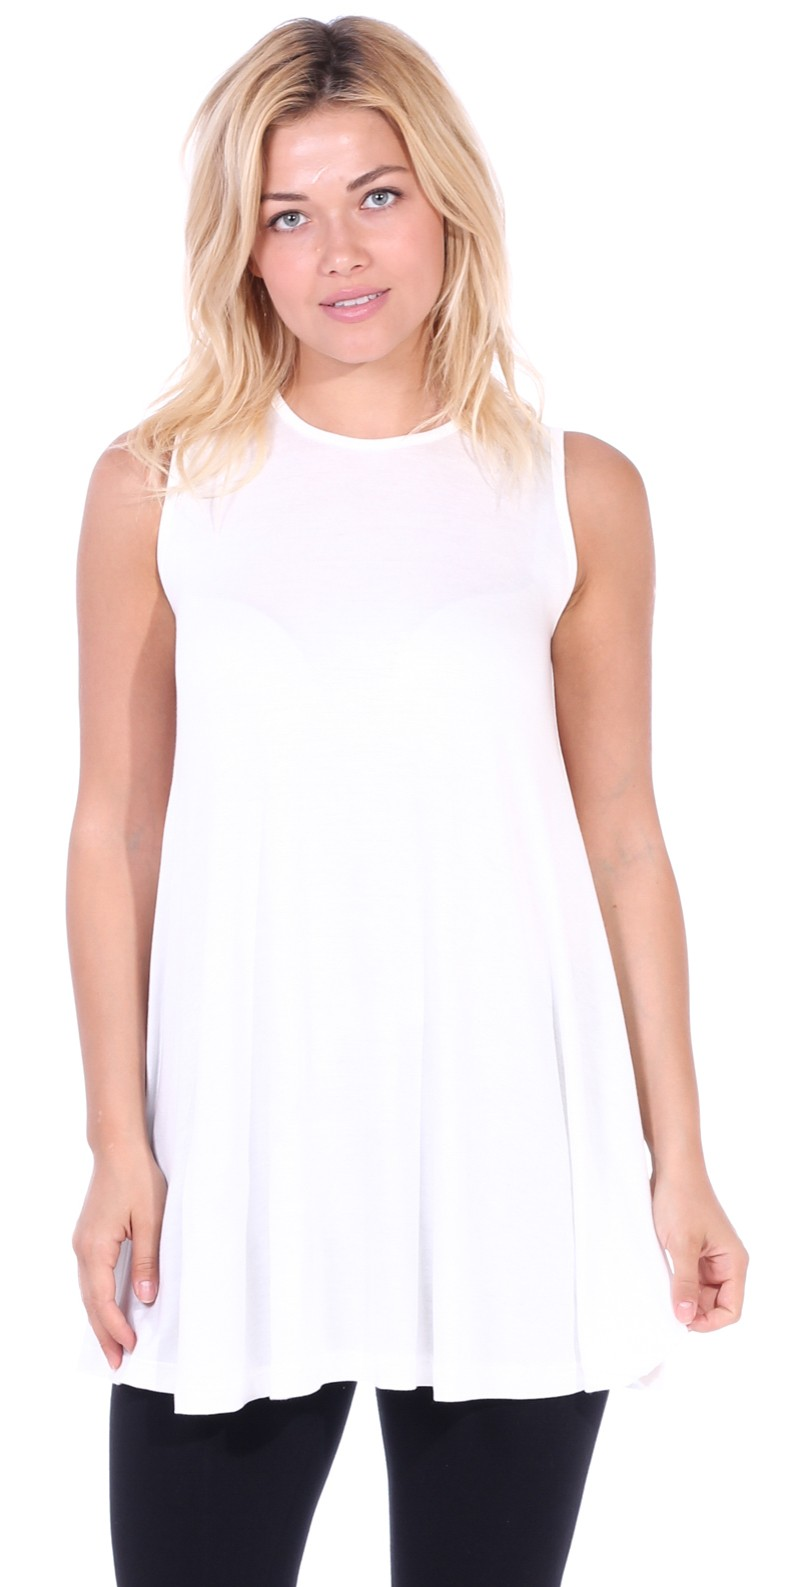 Women's Sleeveless Tank Top Tunic - Loose Fit Flowy Tunic Tank For Leggings - Made In USA - Pearl